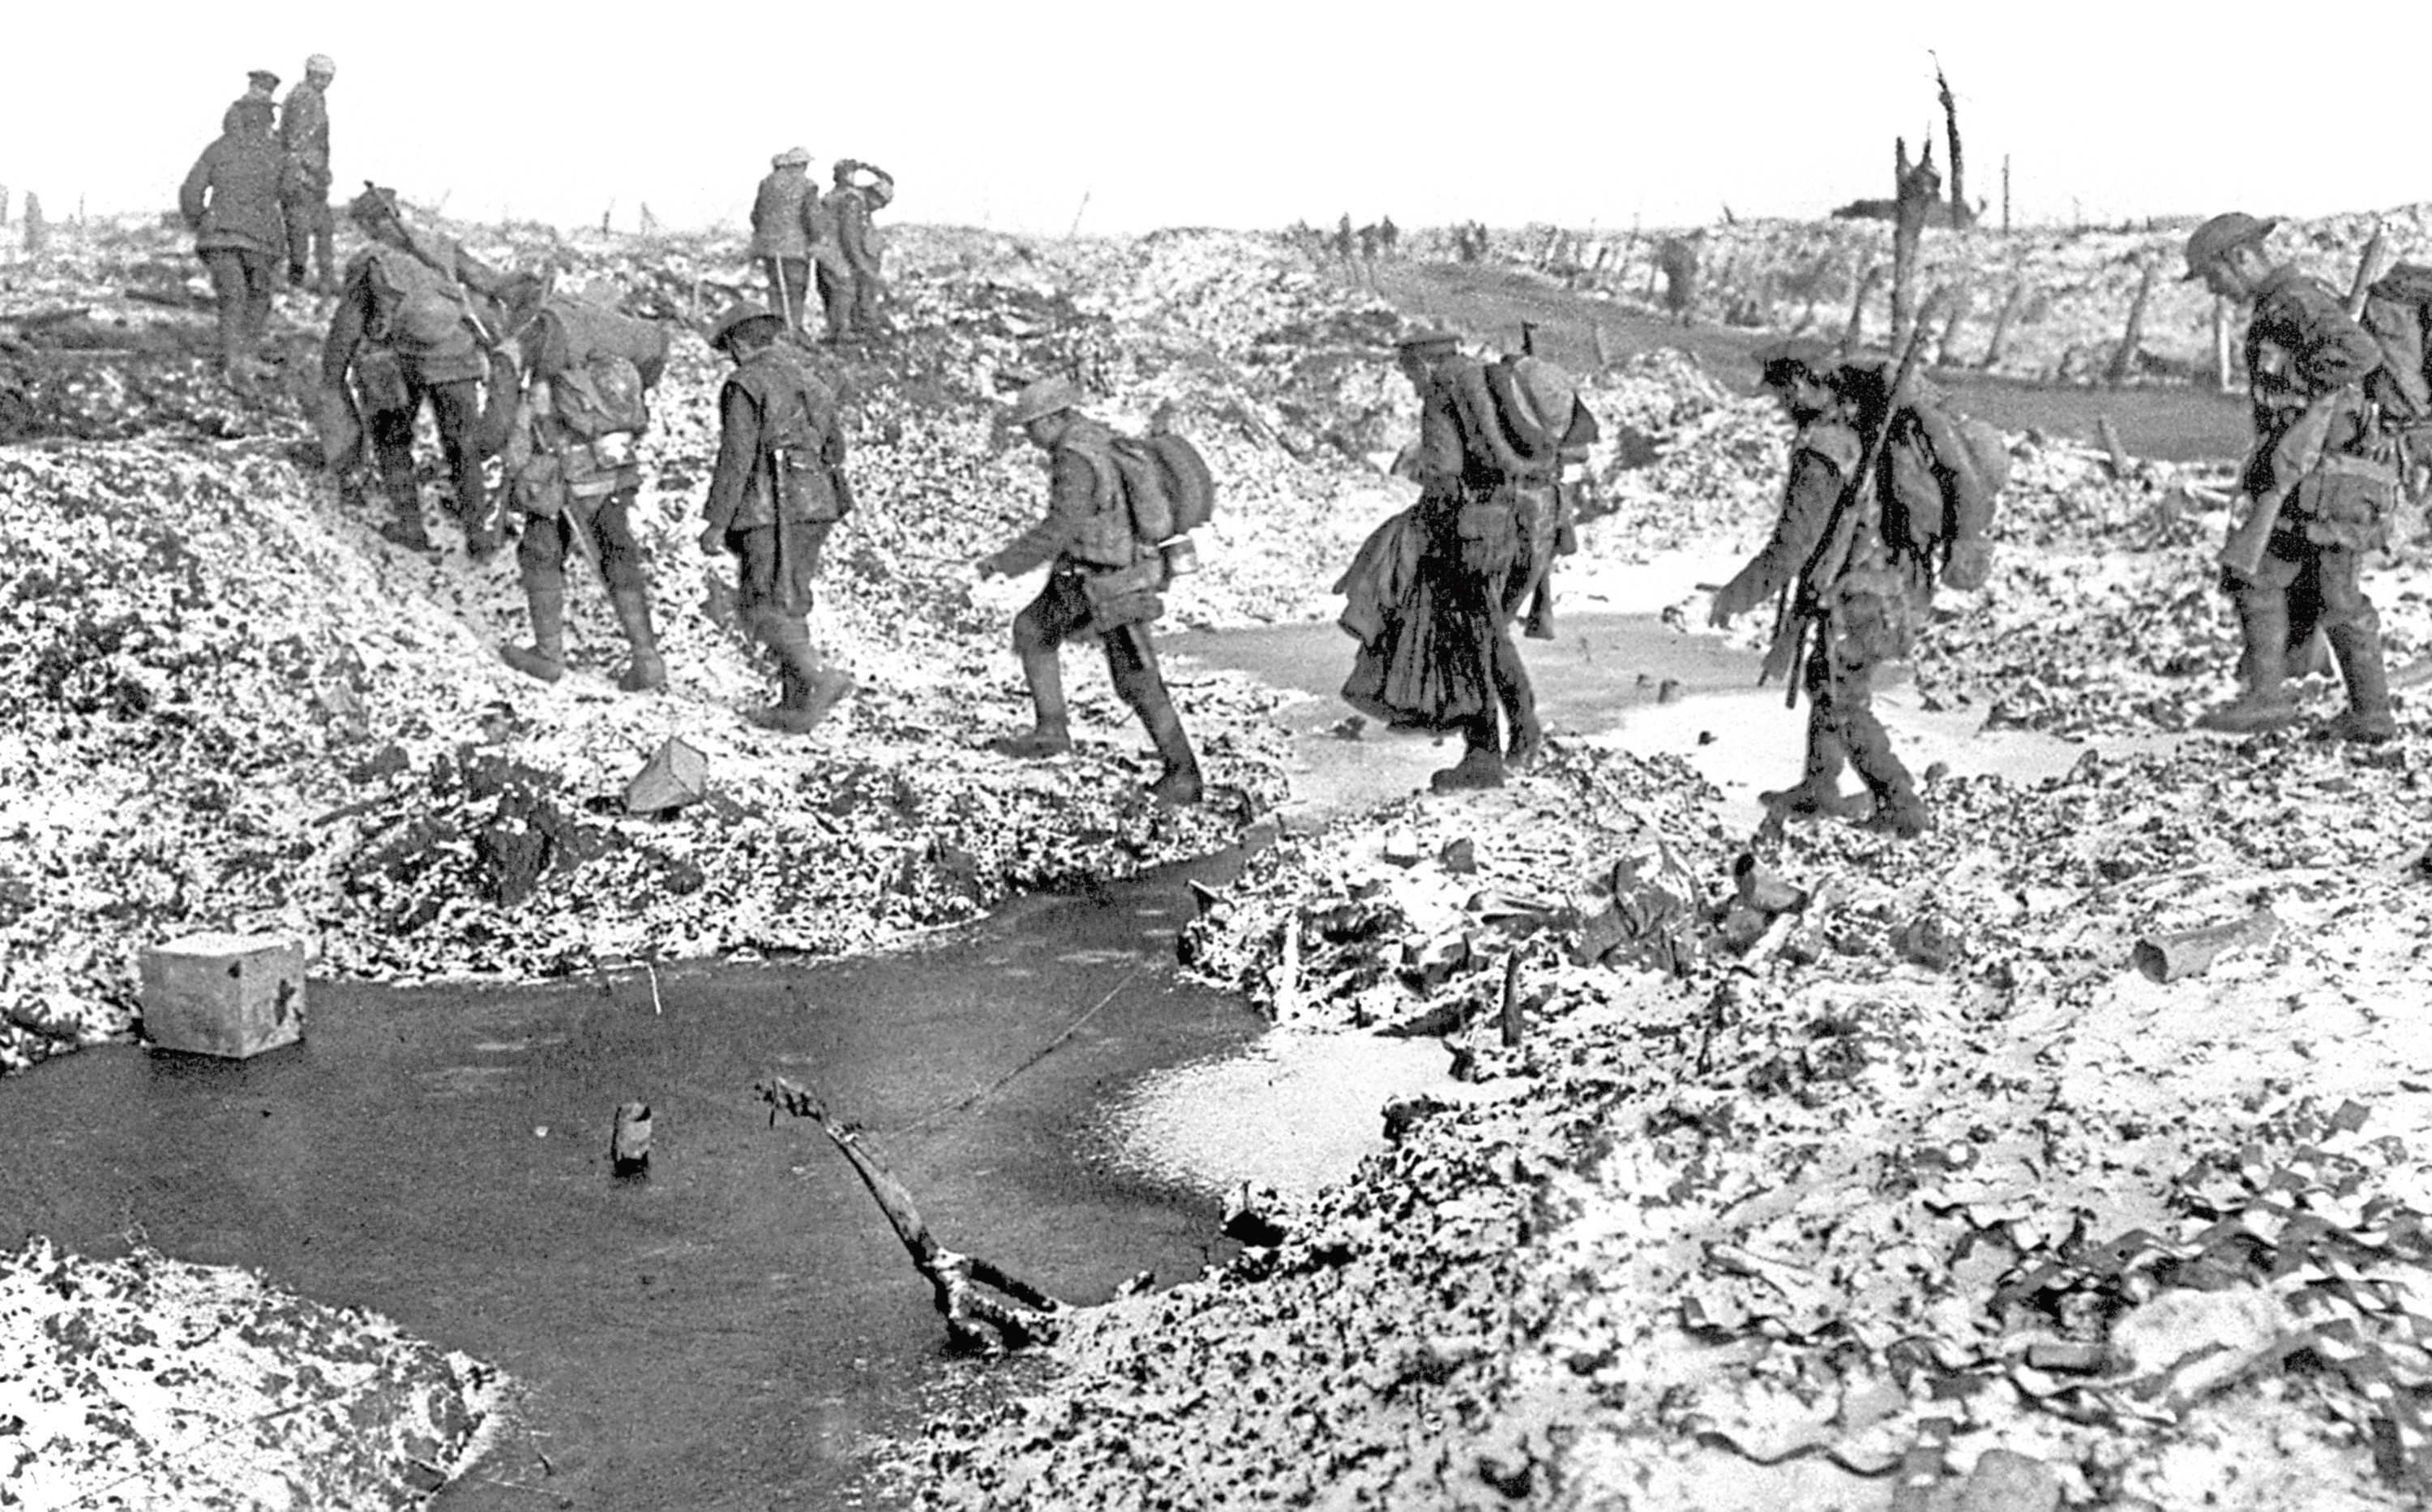 British soldiers negotiating craters near the River Somme in late 1916